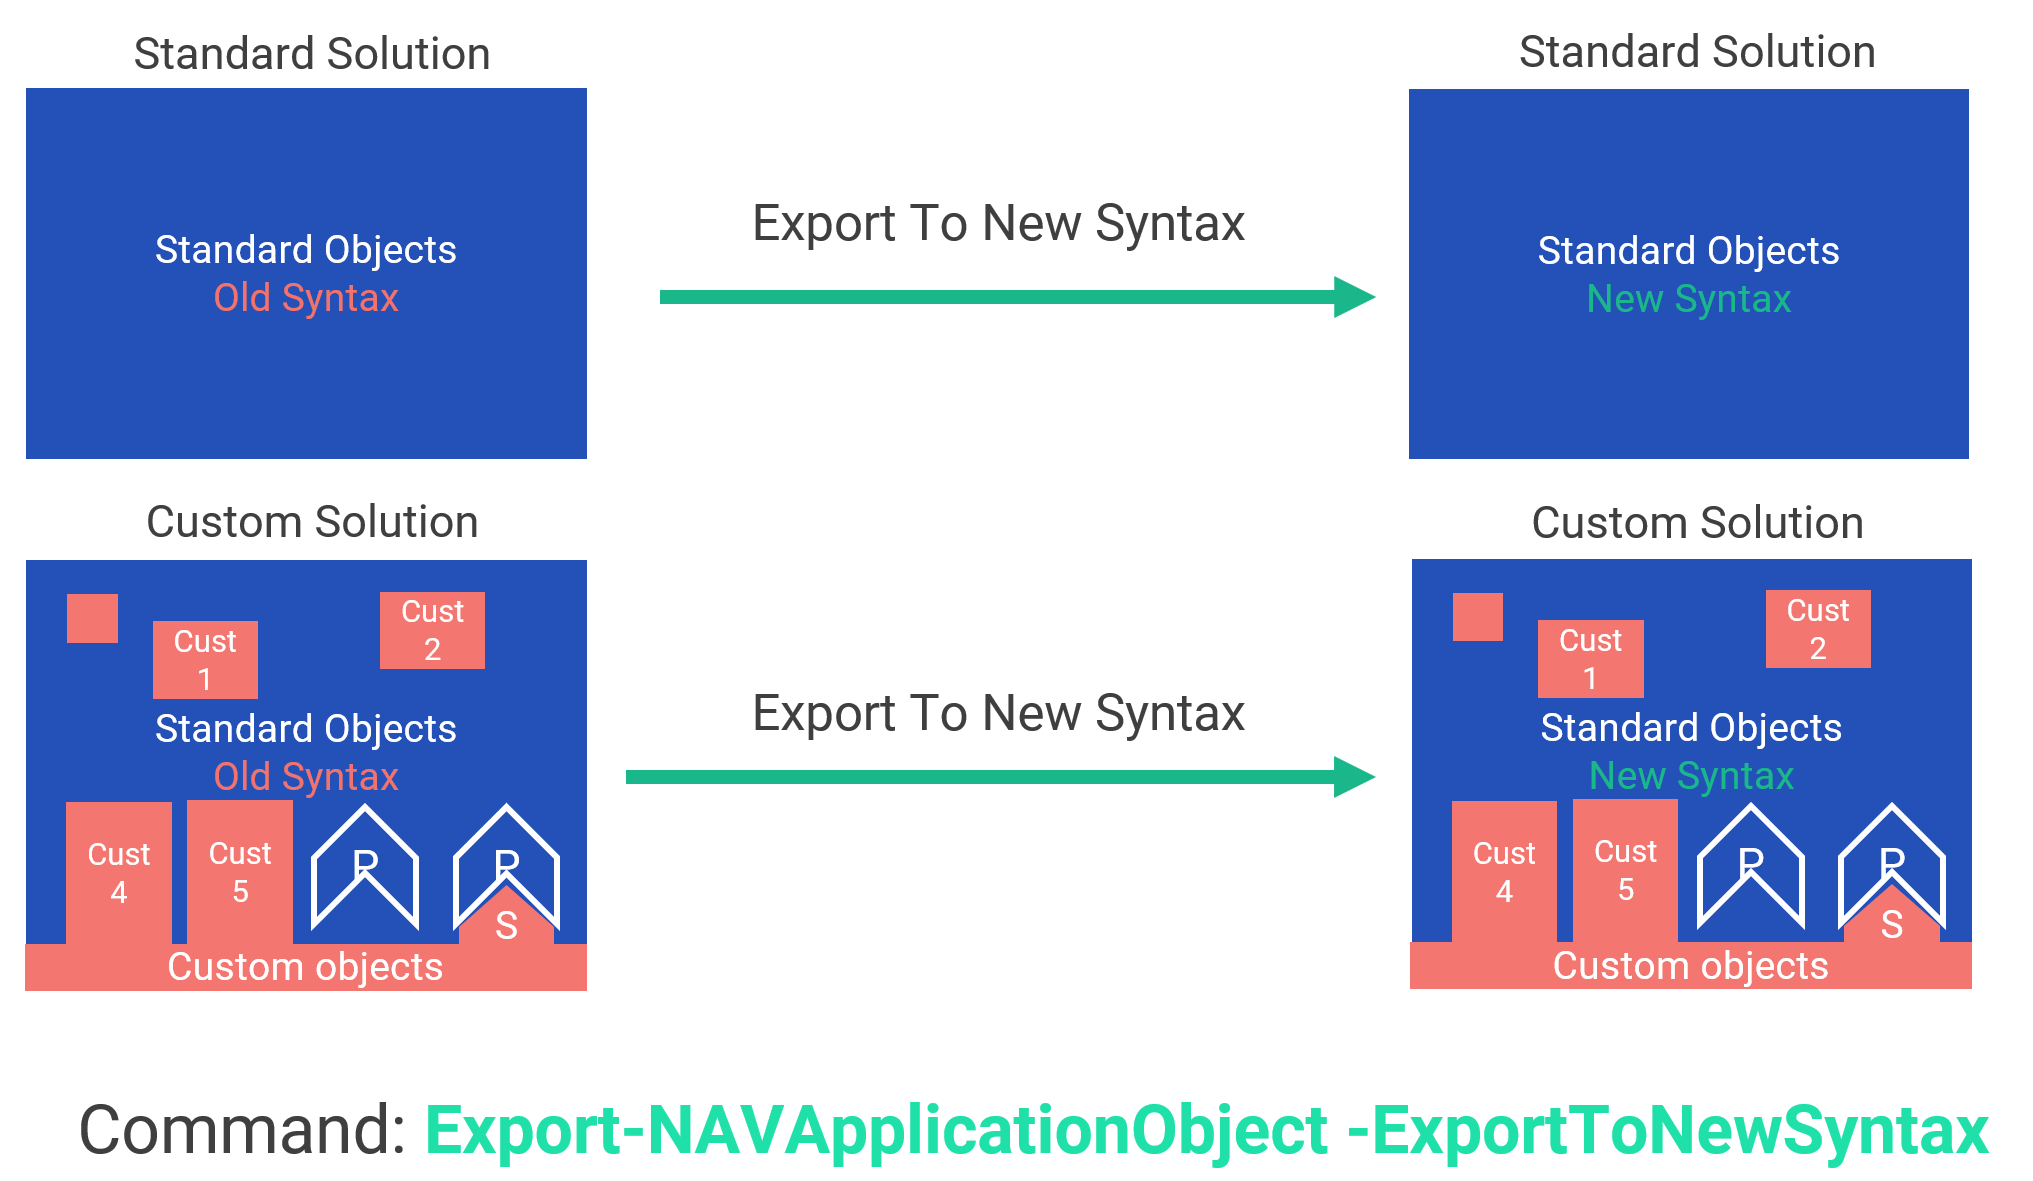 Export objects to new sytax